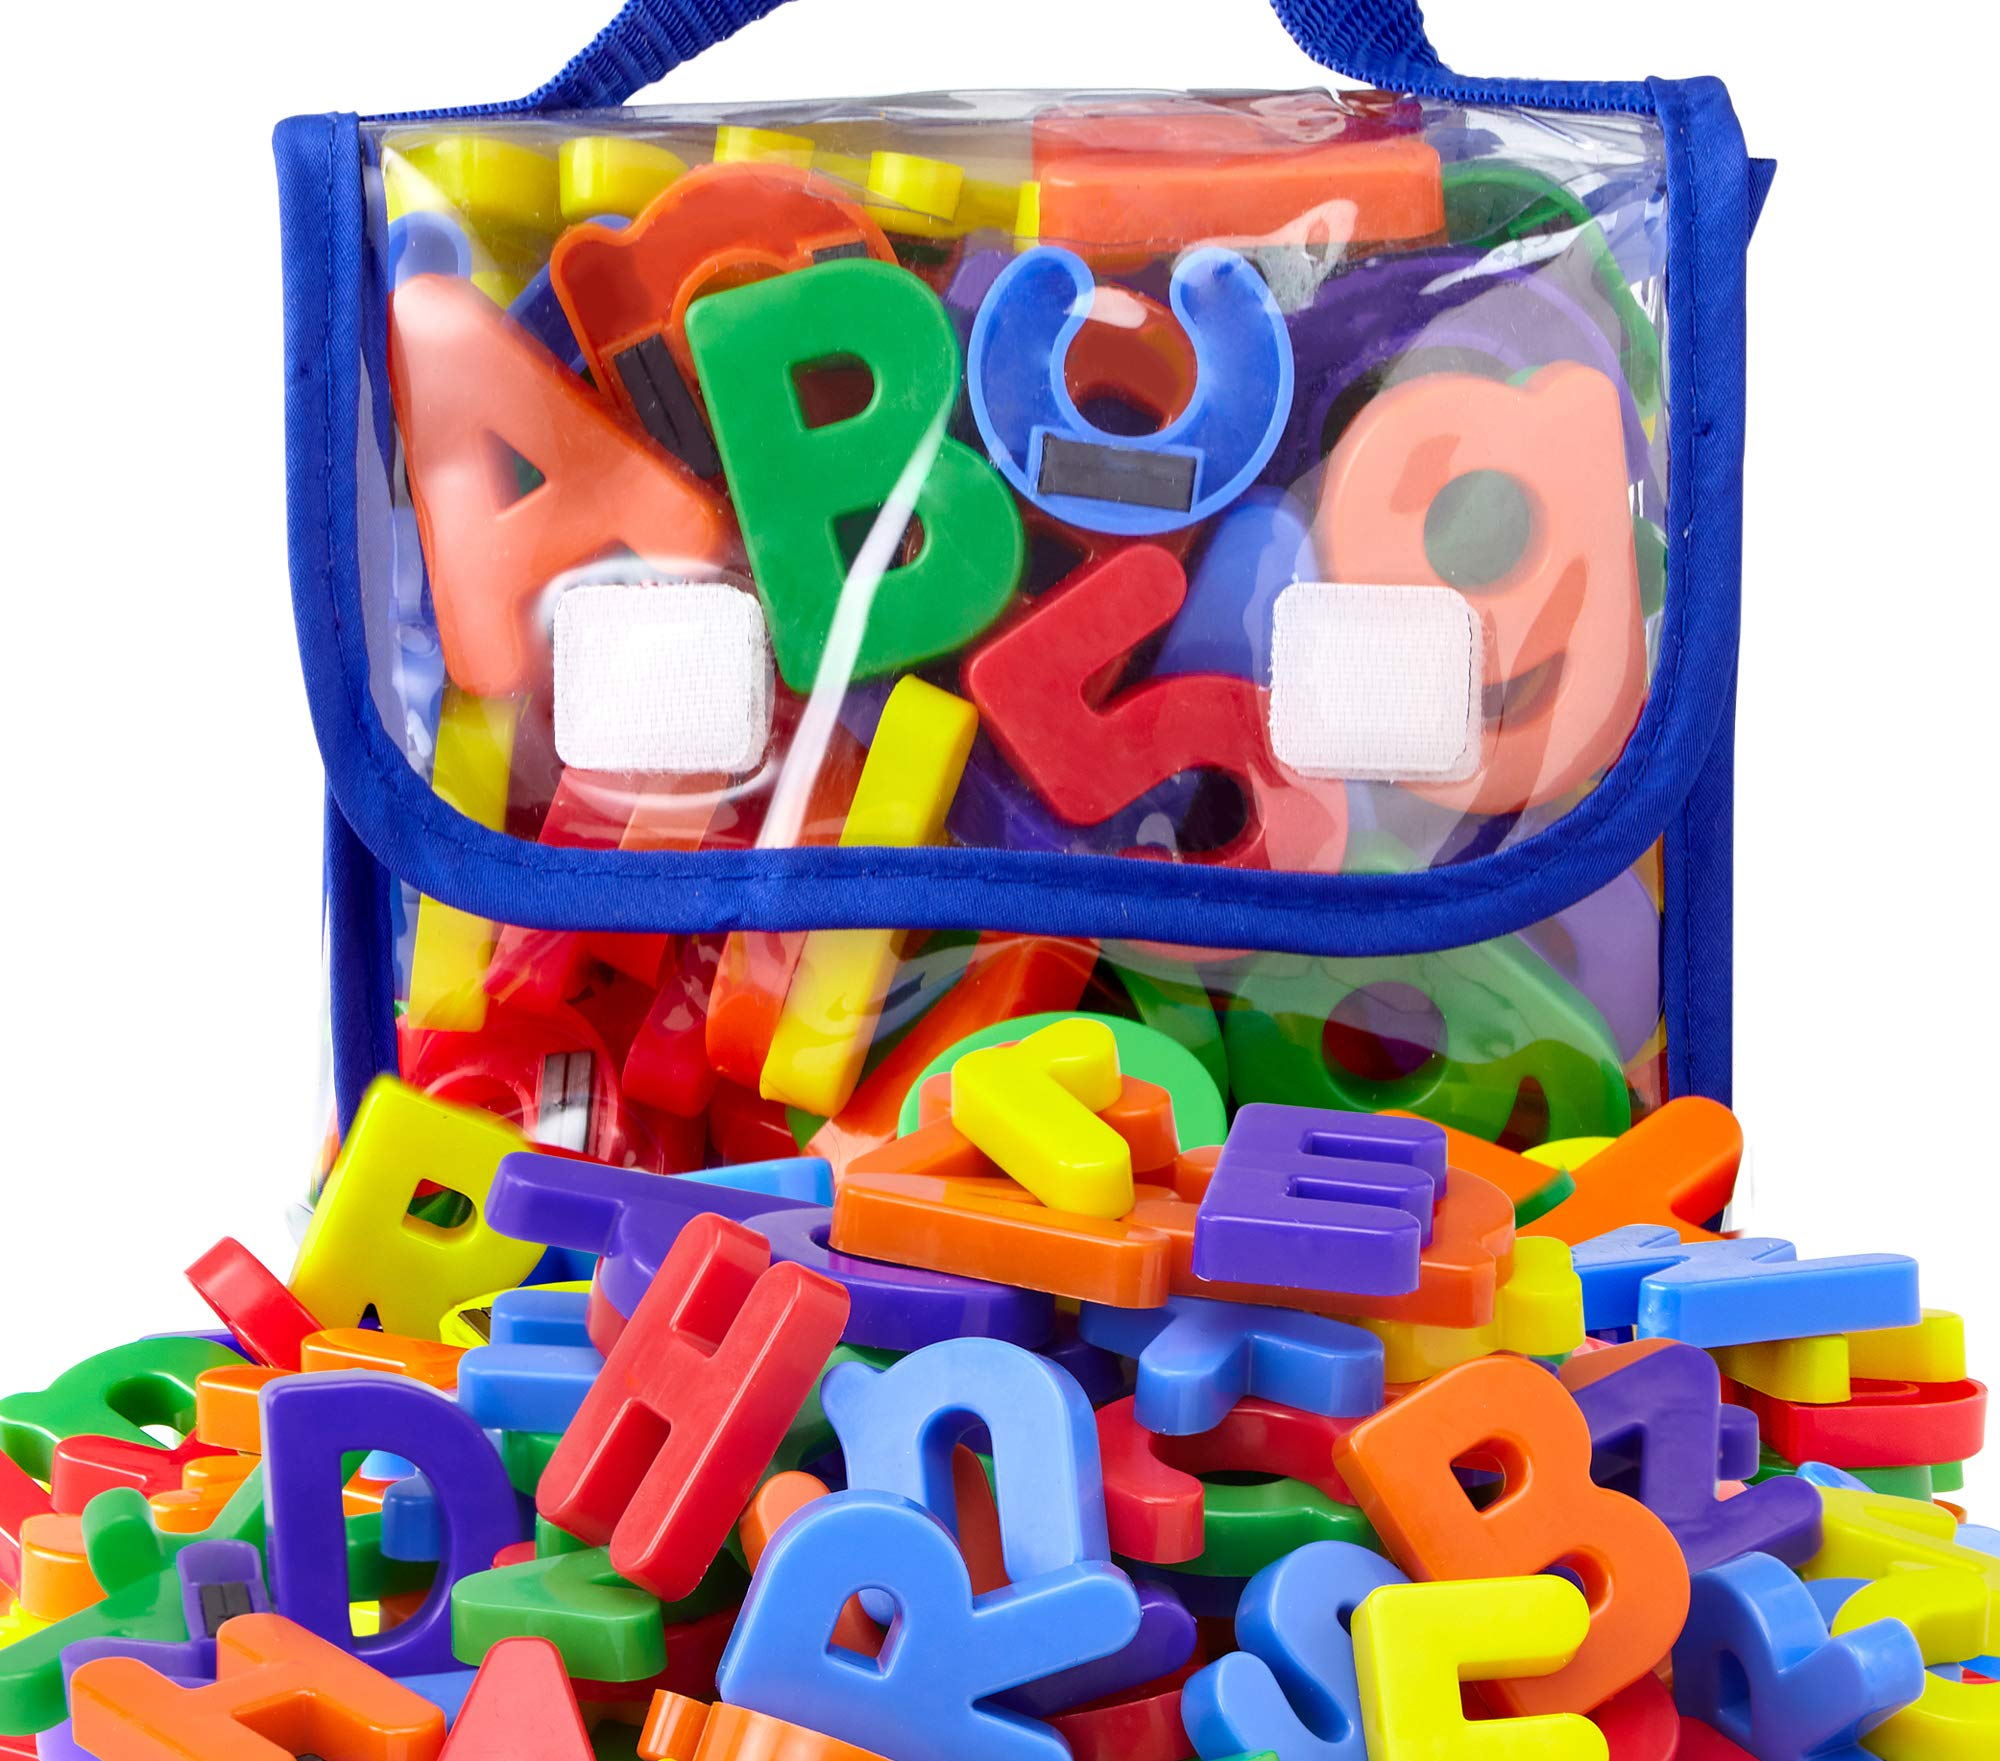 EduKid Toys 72 Magnetic Letters & Numbers (Tote) 1.25'' - 1.75'' (72 ABC Alphabet Magnet Letter) by EduKid Toys